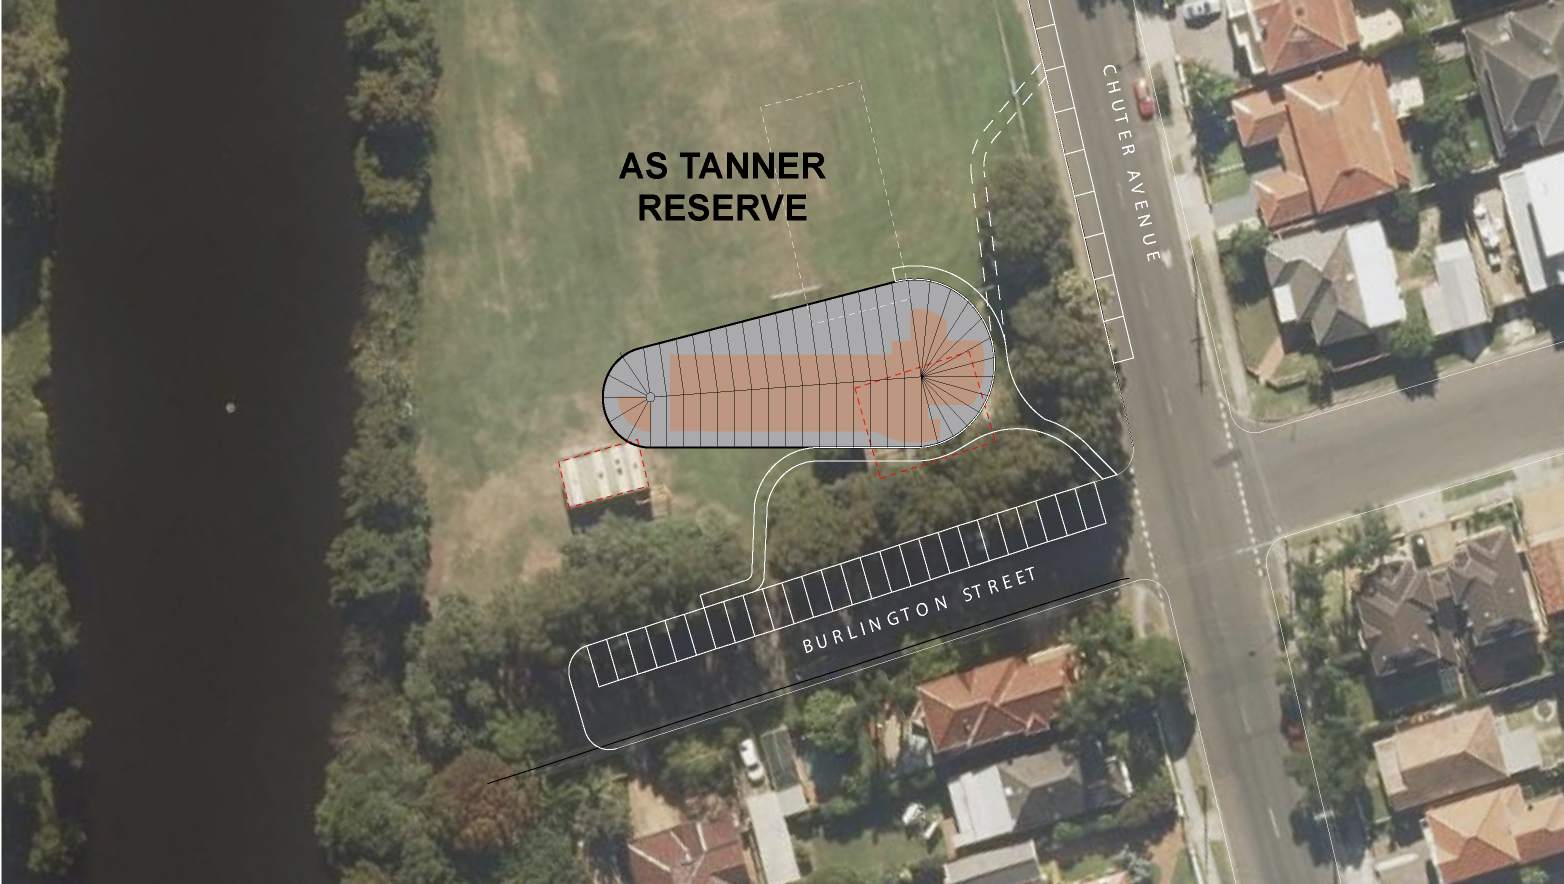 As tanner consultation board  site plan